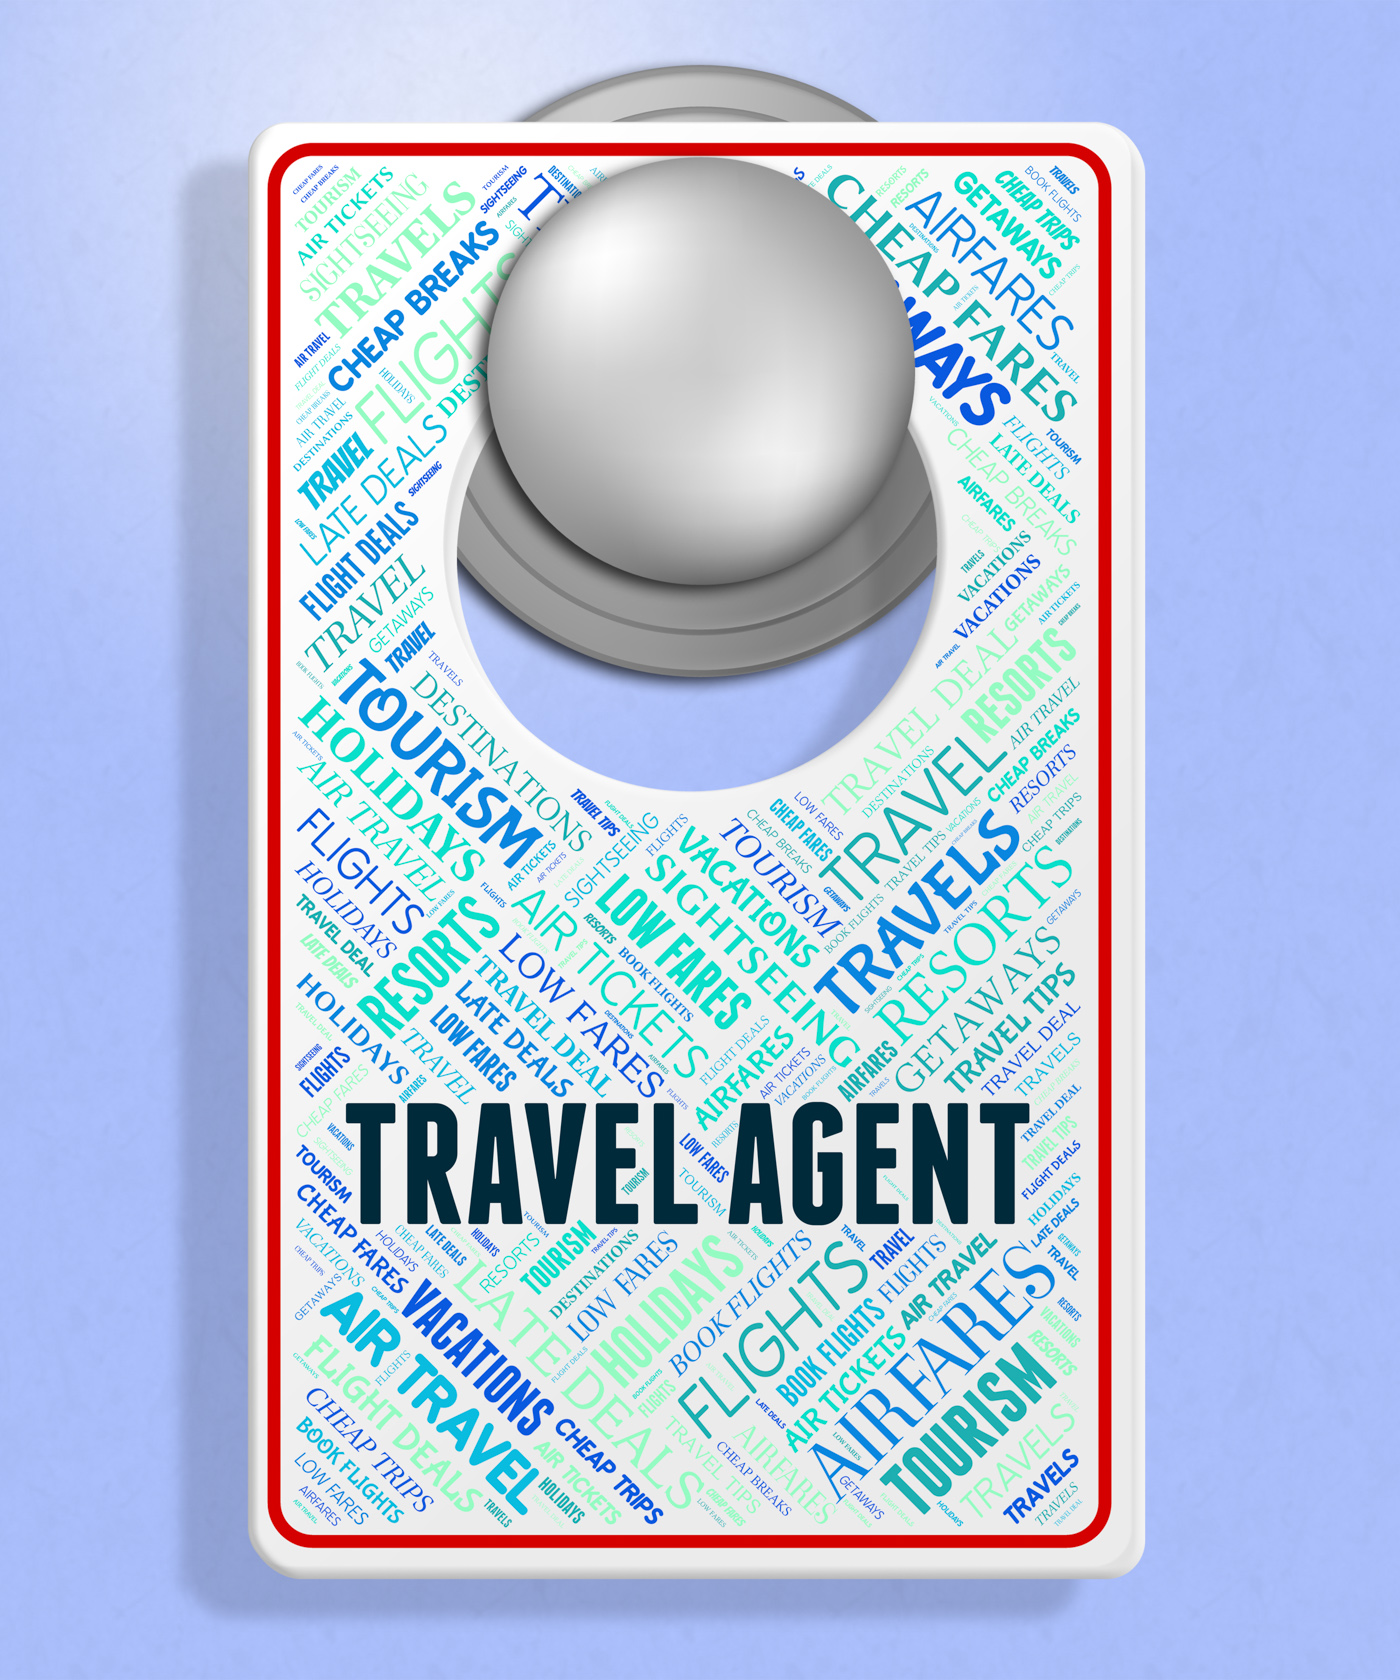 Travel agent shows travels travelling and agents photo